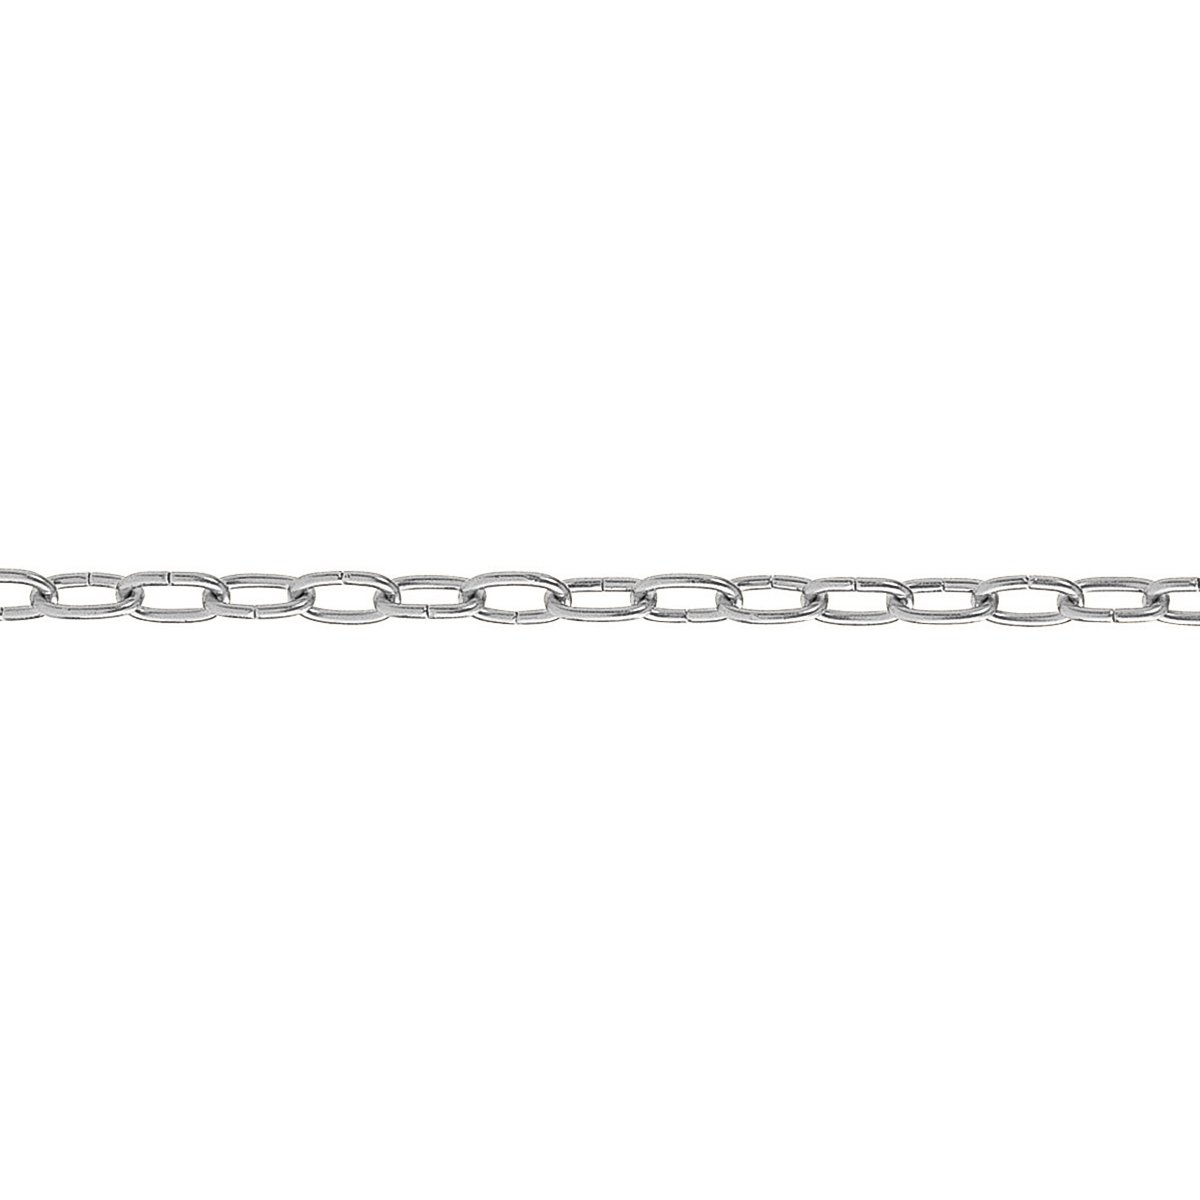 pewag Uhrkette 1,1 mm, vernickelt, 89527